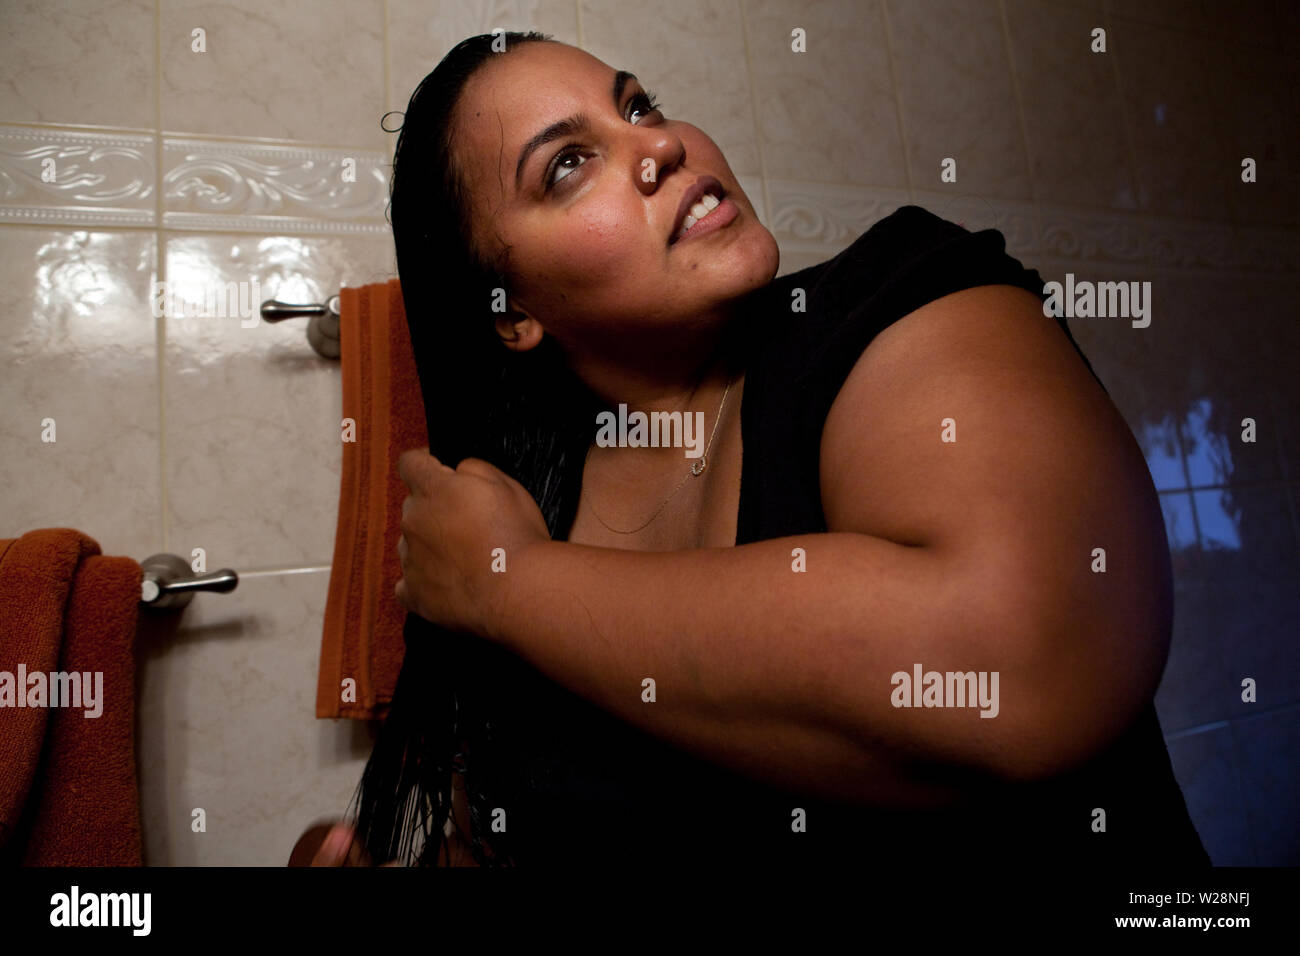 Falan Drying Her Hair At Her Home In New York City New York United States On April 8 2011 Falan Abreu Is An American Girl With Morbid Obesity She Will Soon Have